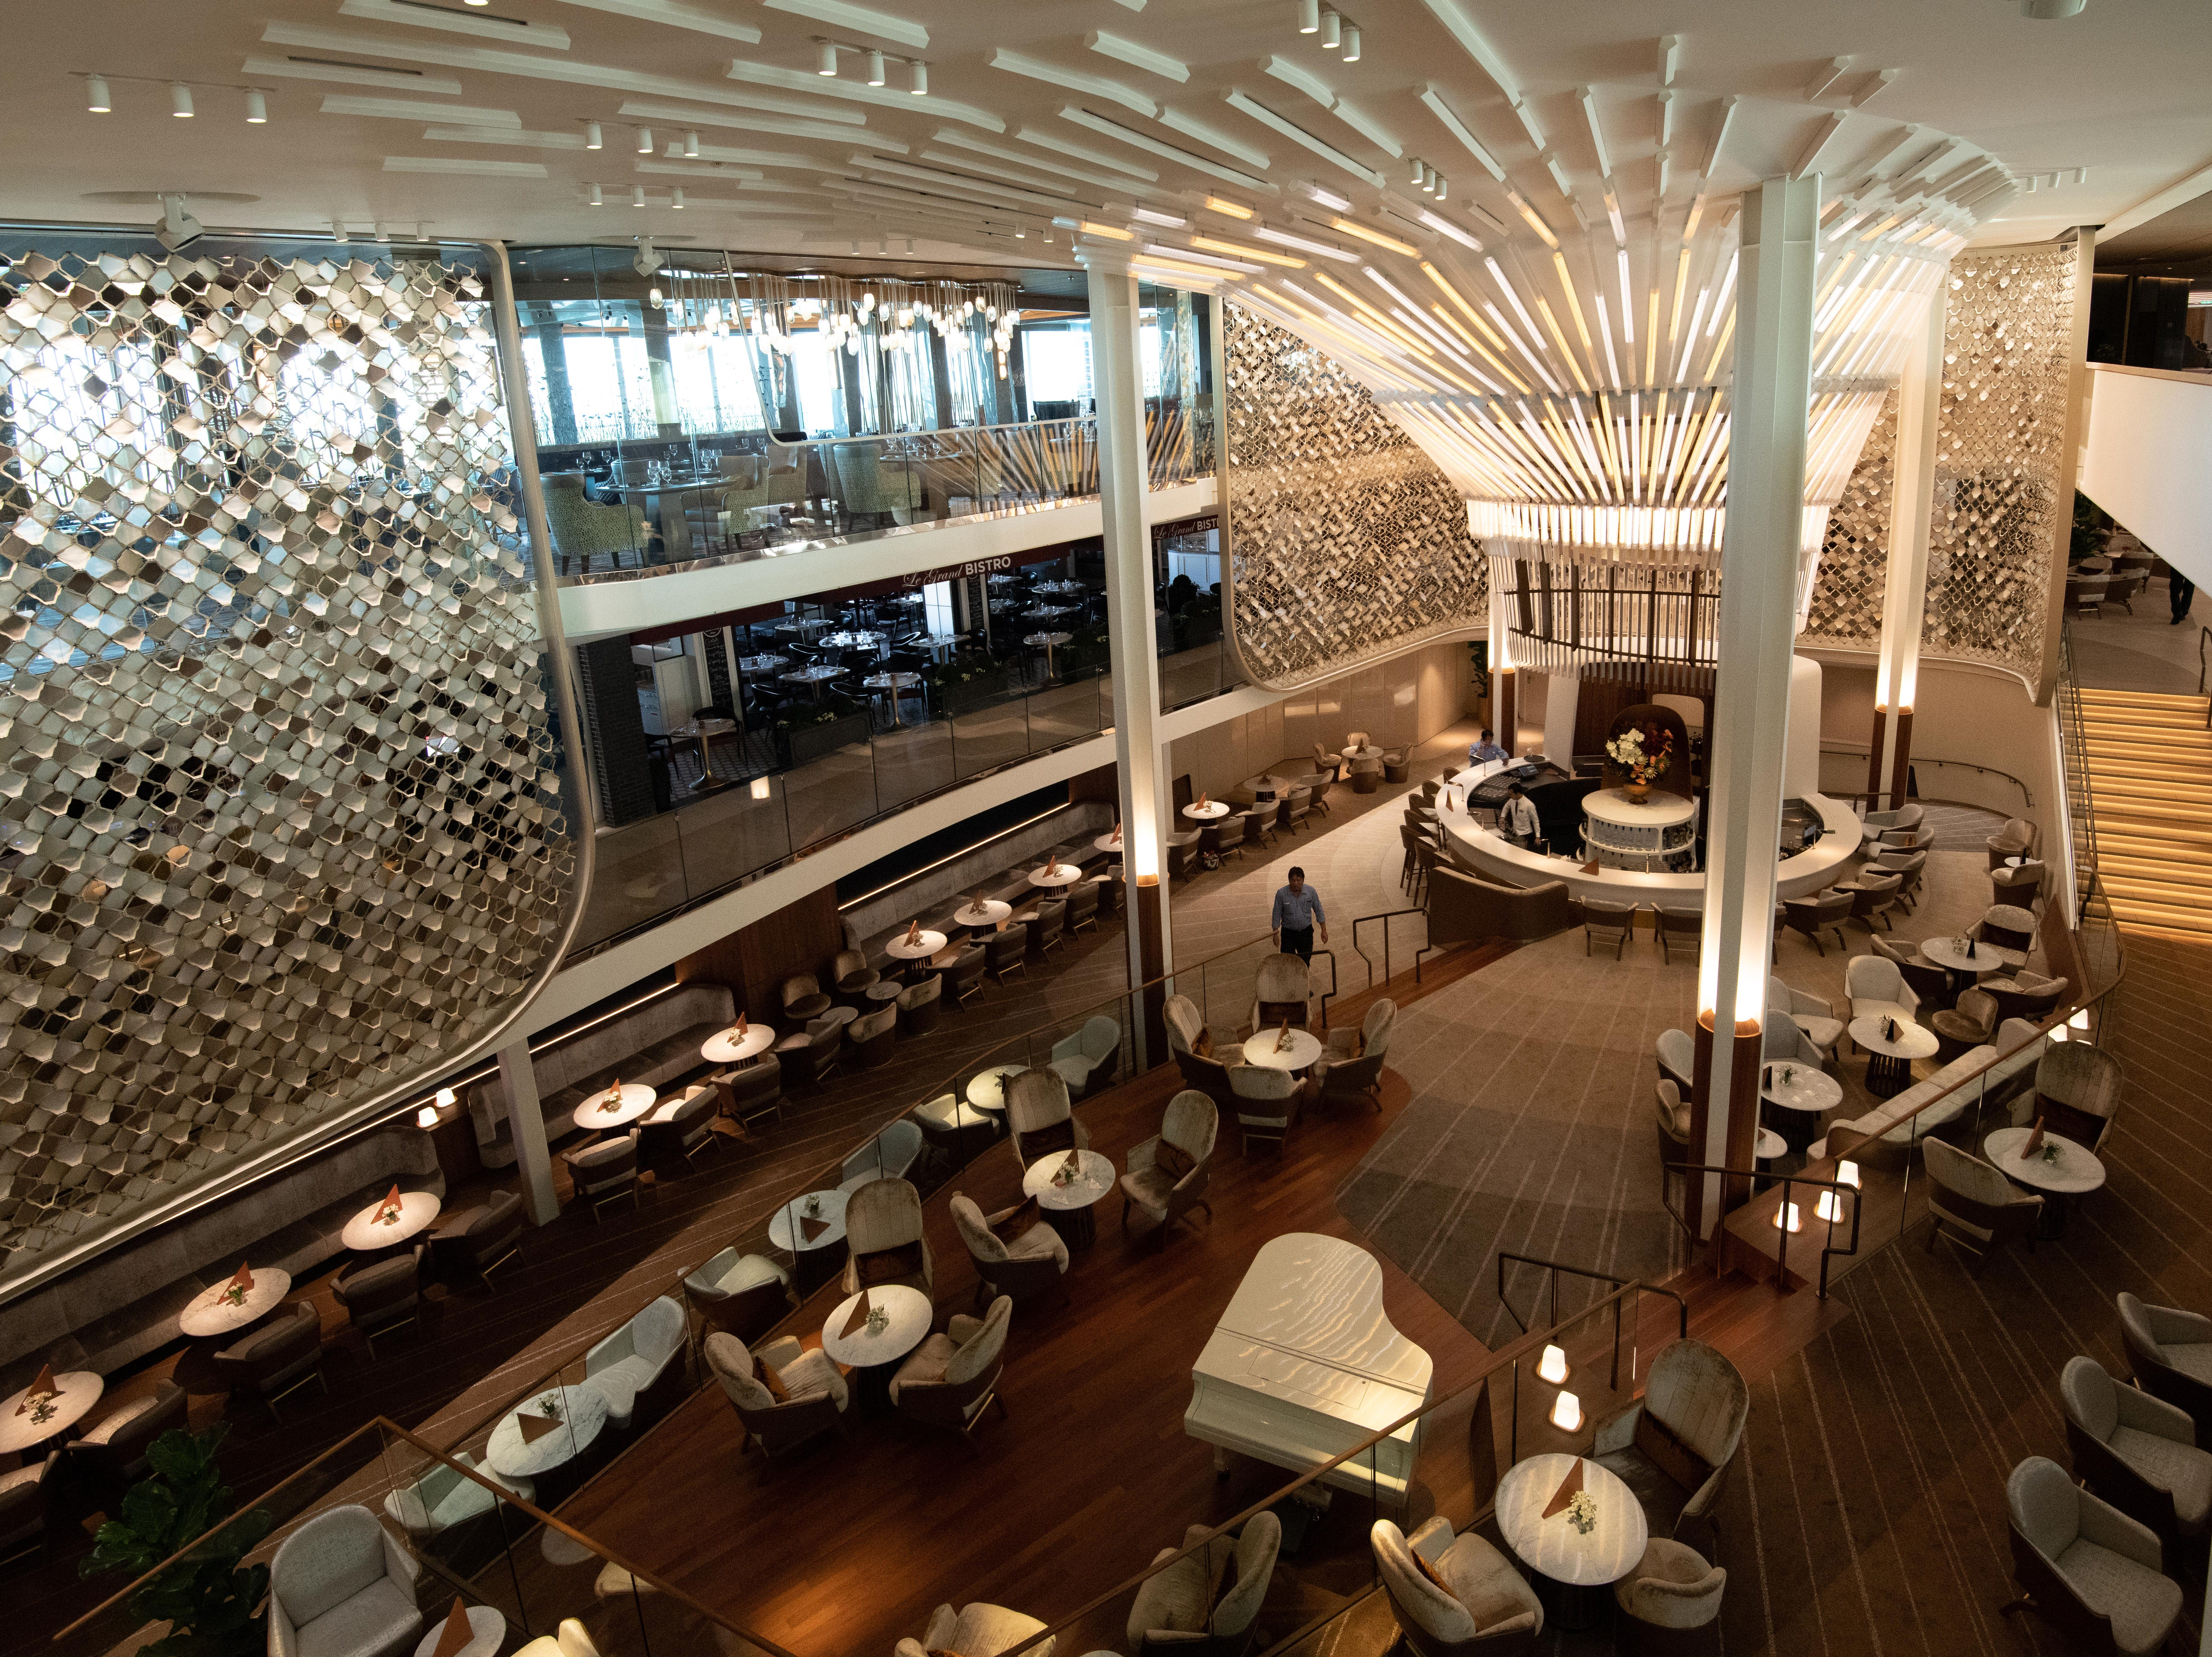 The focal point of The Grand Plaza is The Chandelier, a striking light feature and art piece that soars above the ship's signature Martini Bar